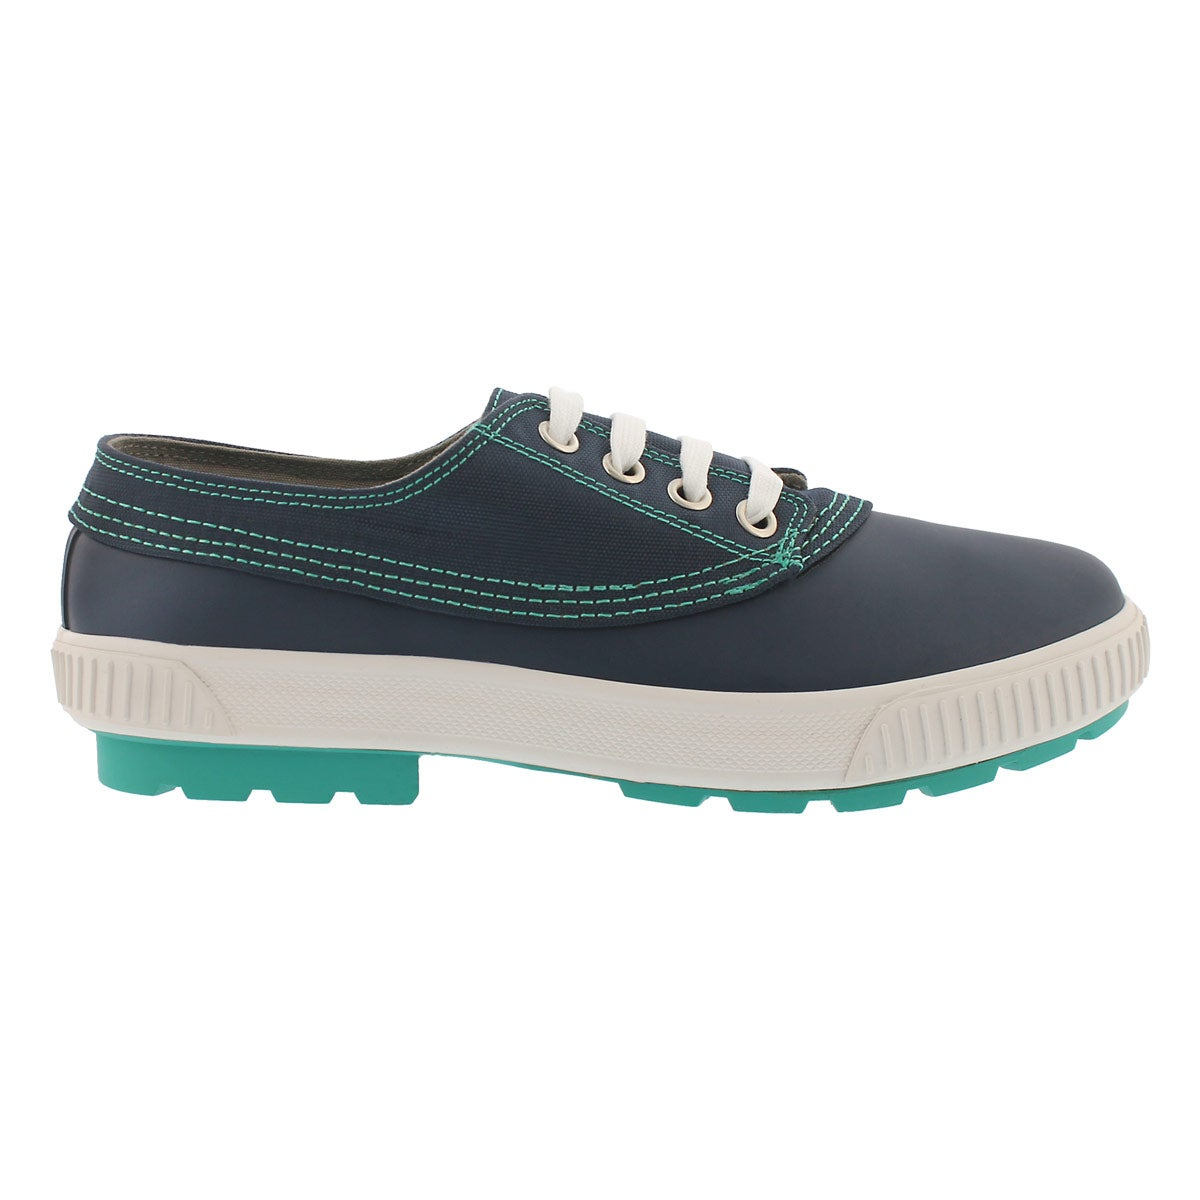 Lds Dash navy waterproof lace up duckie